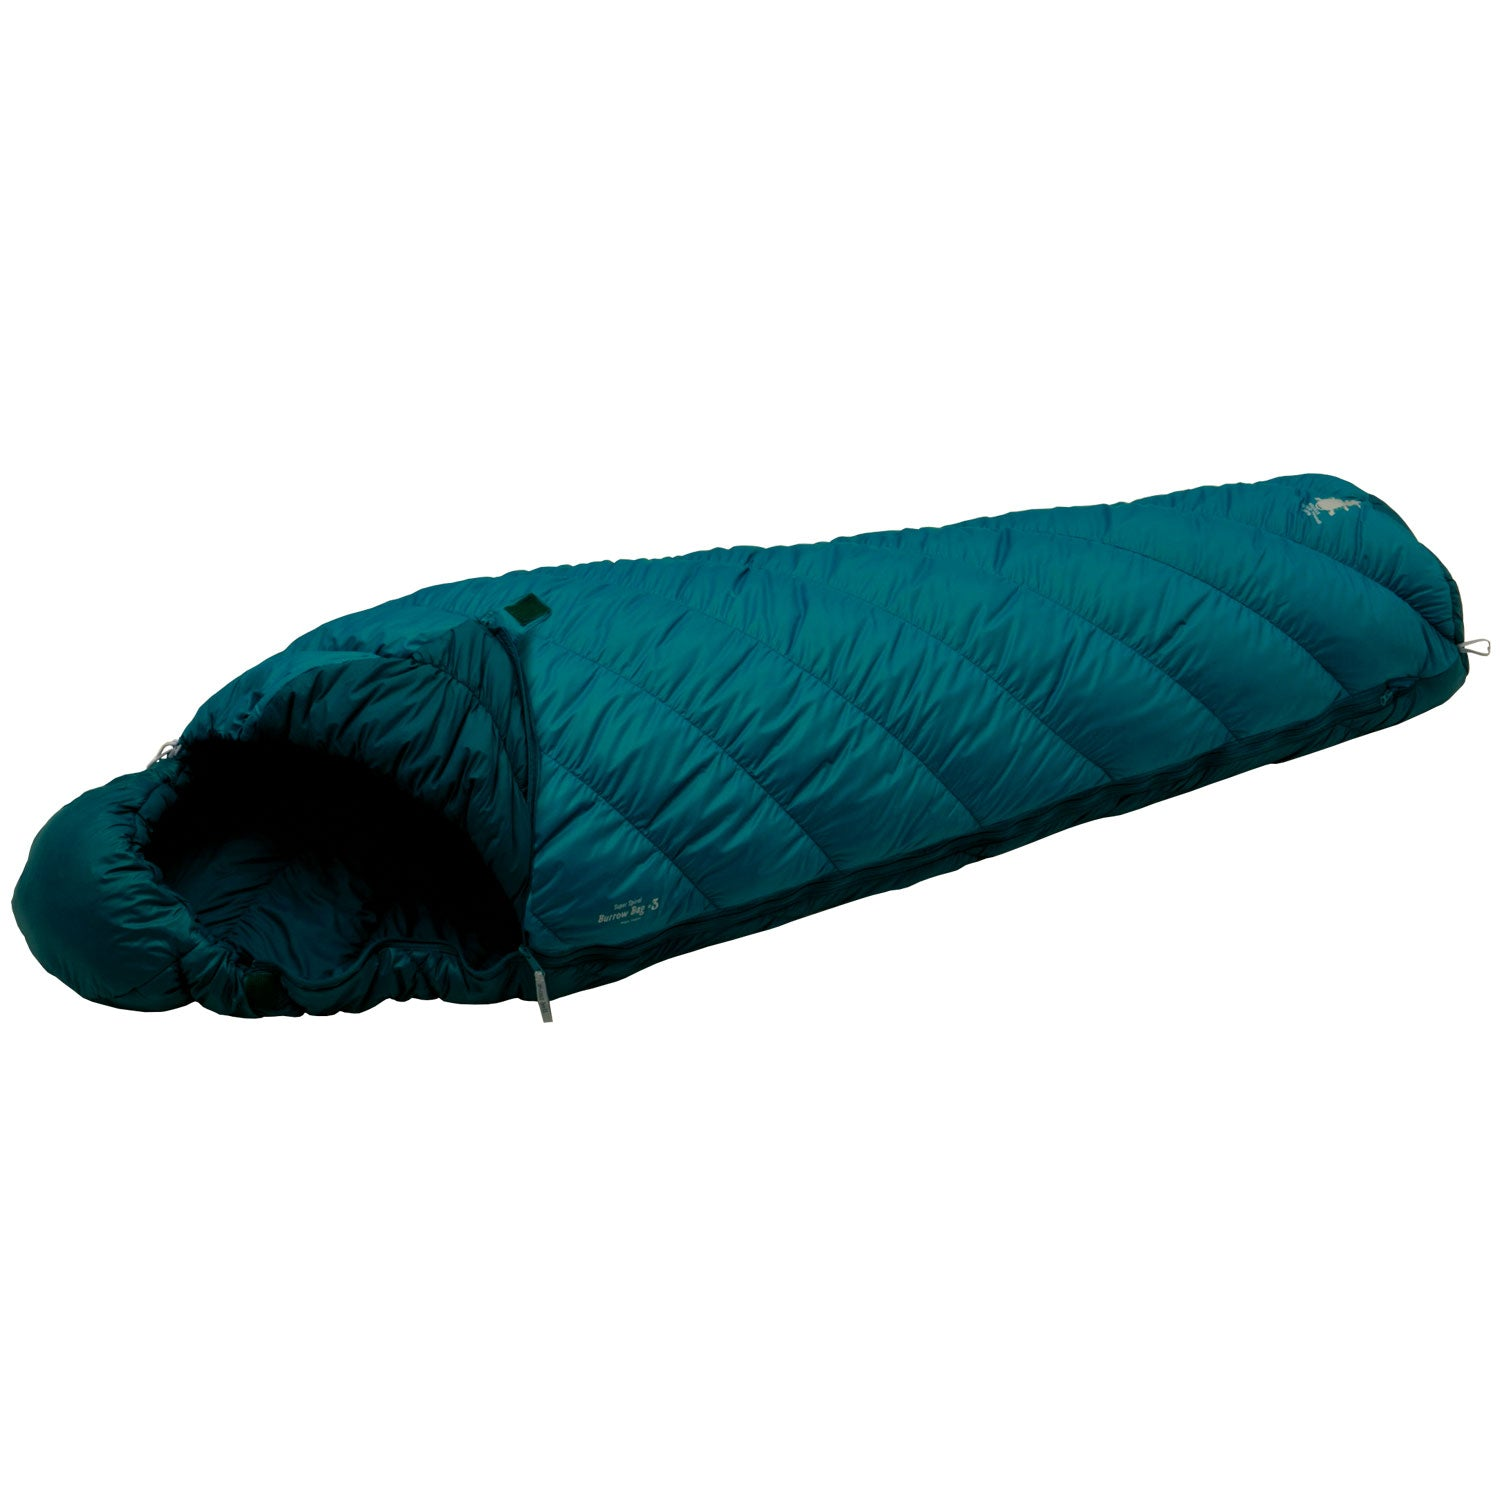 Sleeping Bag Rental